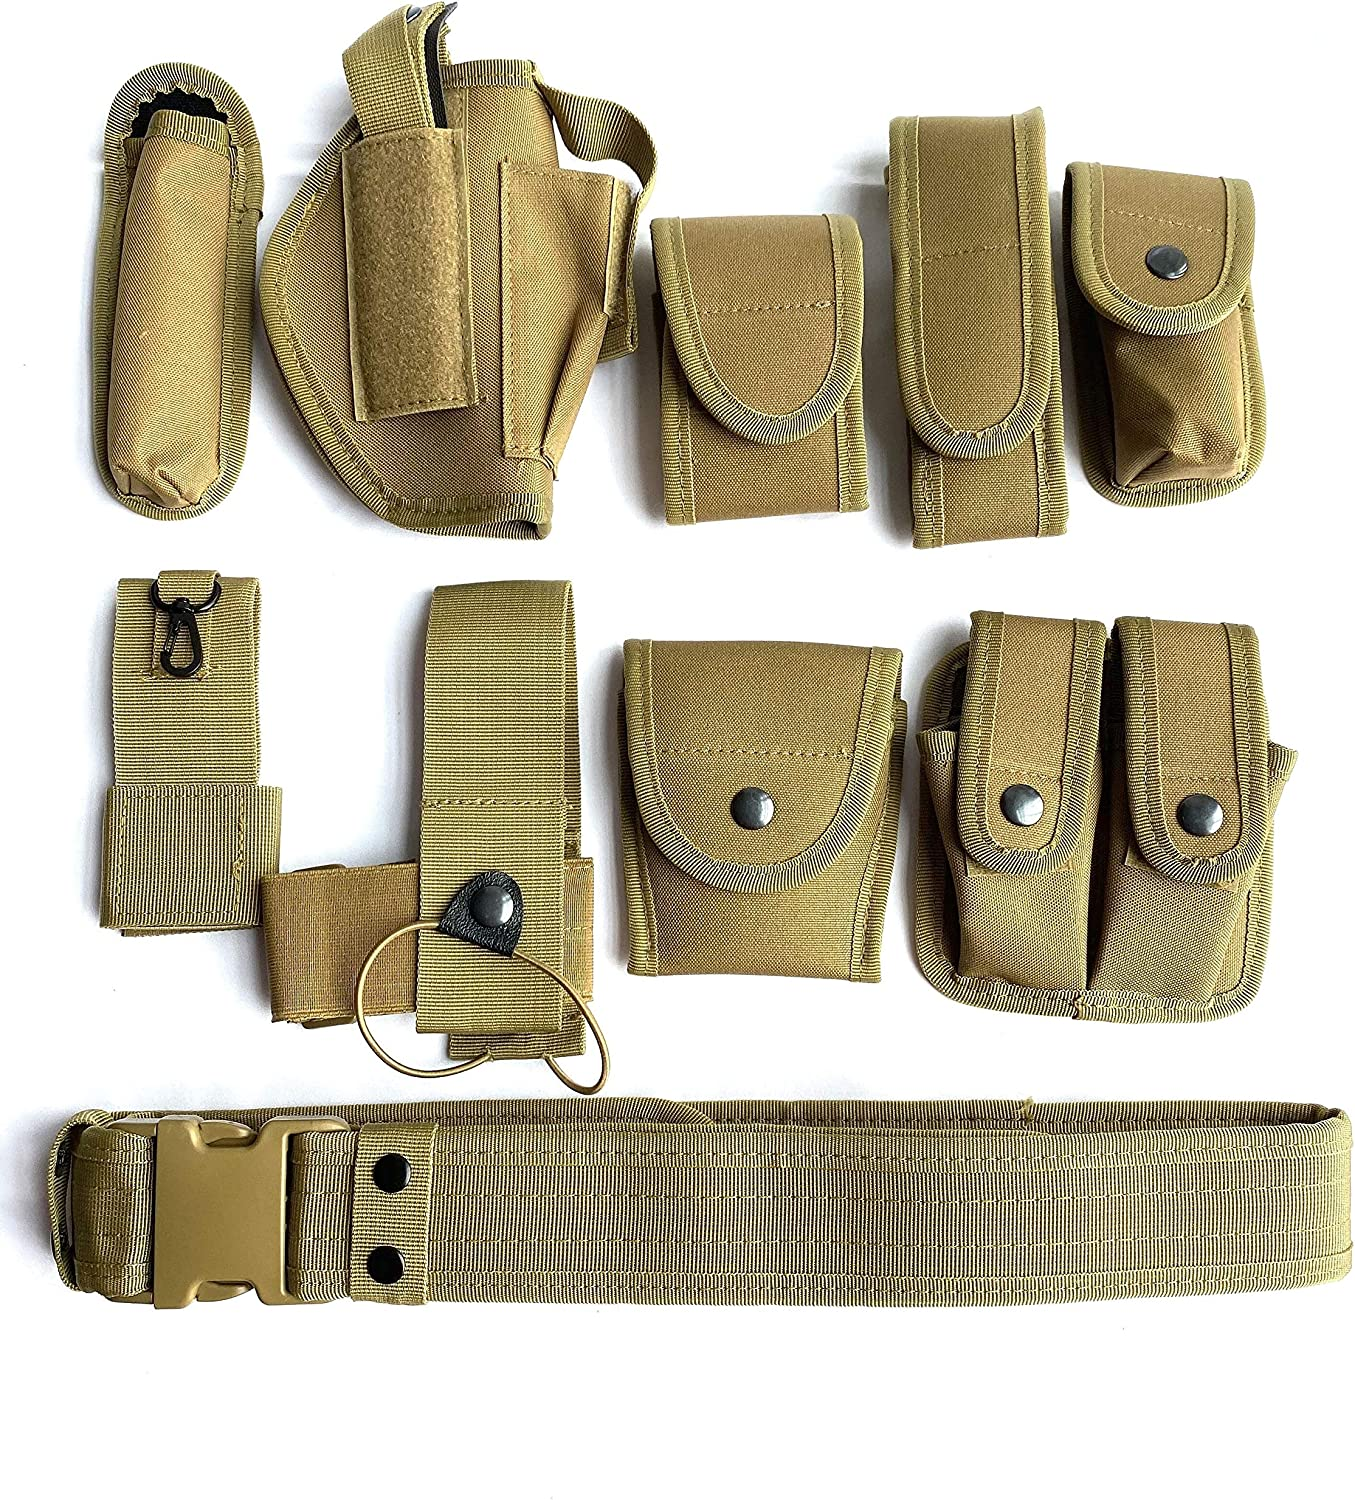 Khaki Law Enforcement Modular Equipment System Security Military Tactical Duty Utility Belt (10 in 1, adjustable 35-45 inches, Khaki)